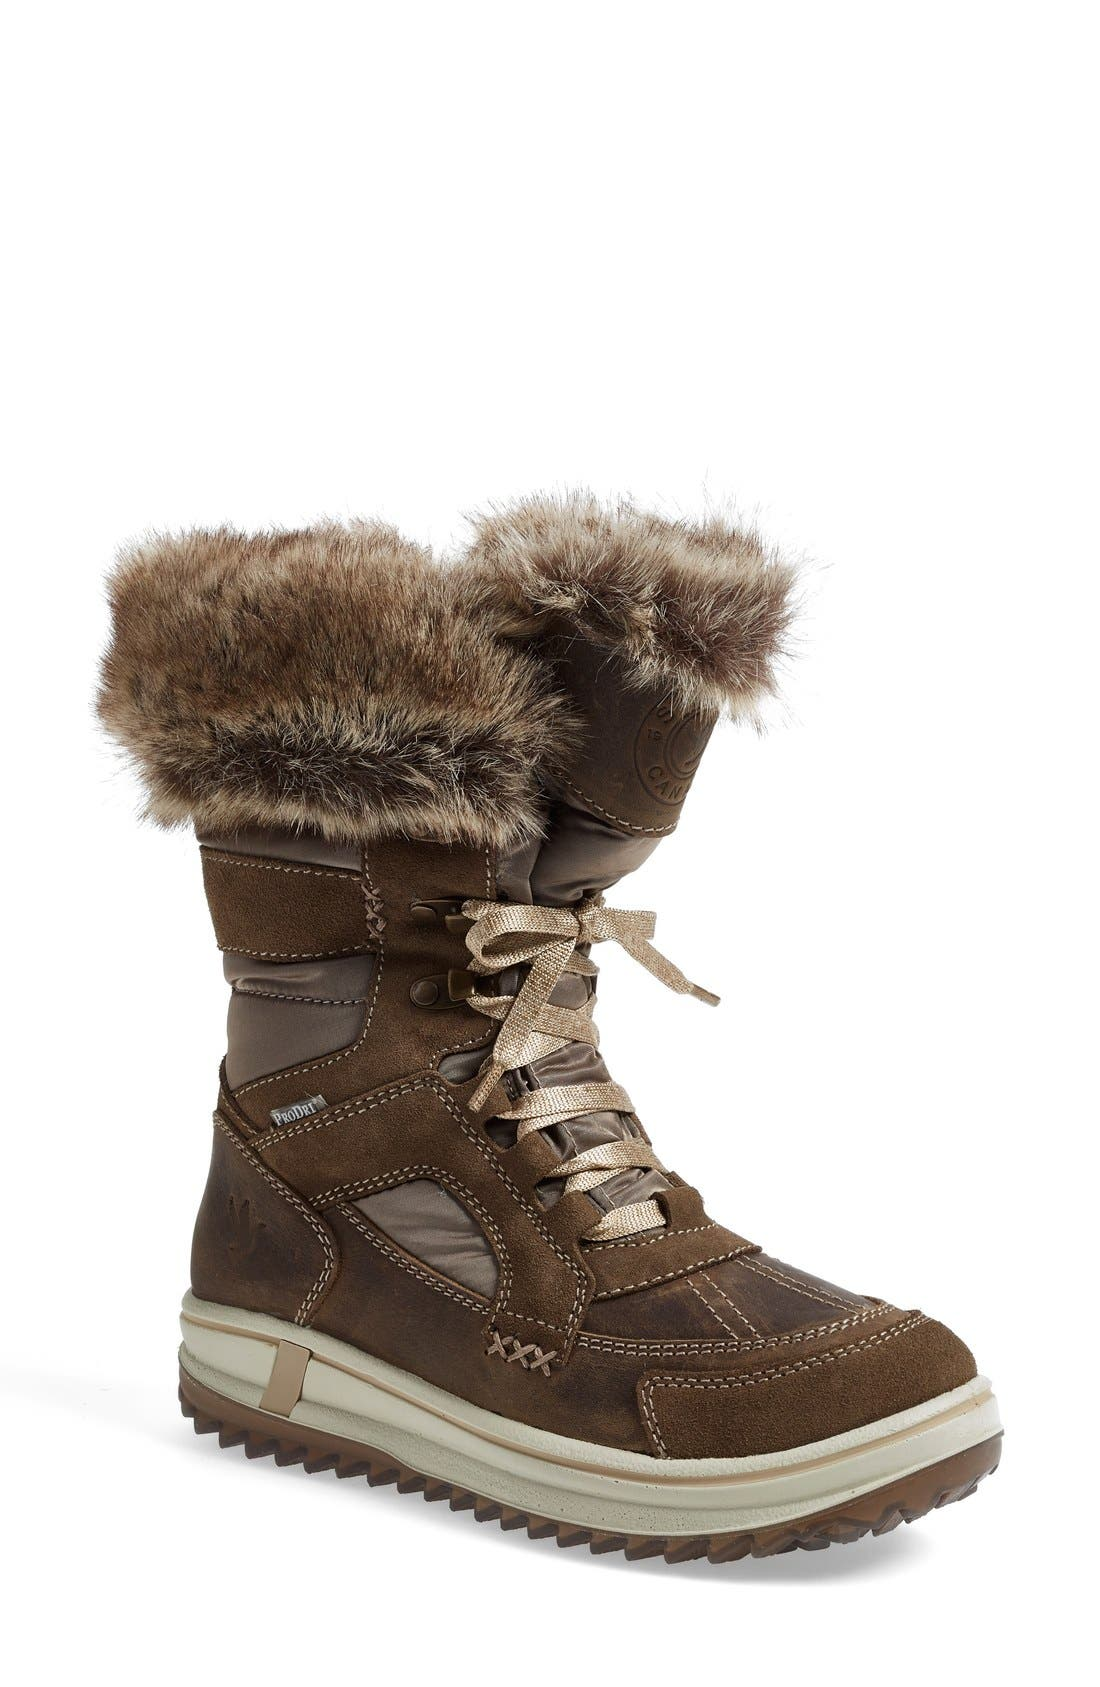 'Marta' Water Resistant Insulated Winter Boot,                             Main thumbnail 1, color,                             236